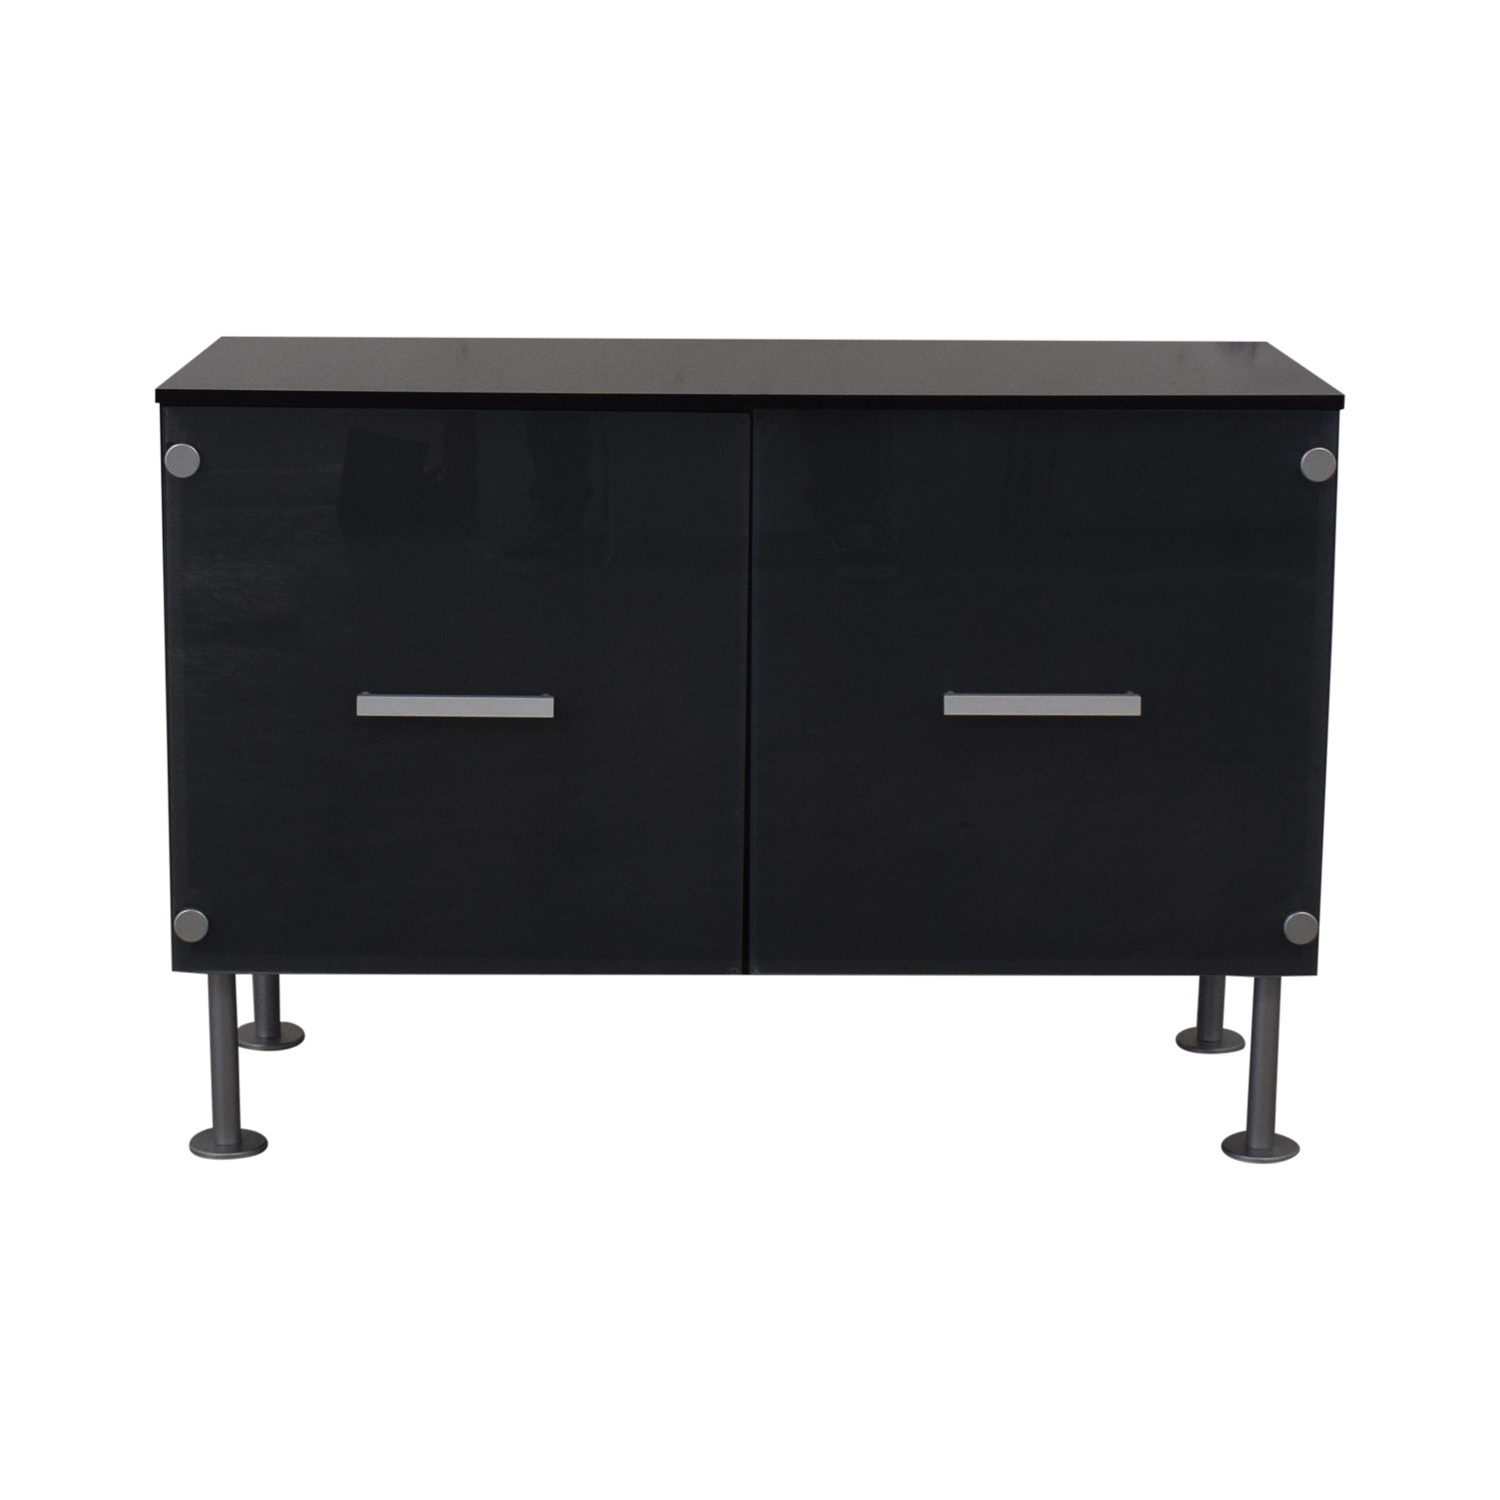 BoConcept BoConcept Media Console with Frost Doors second hand